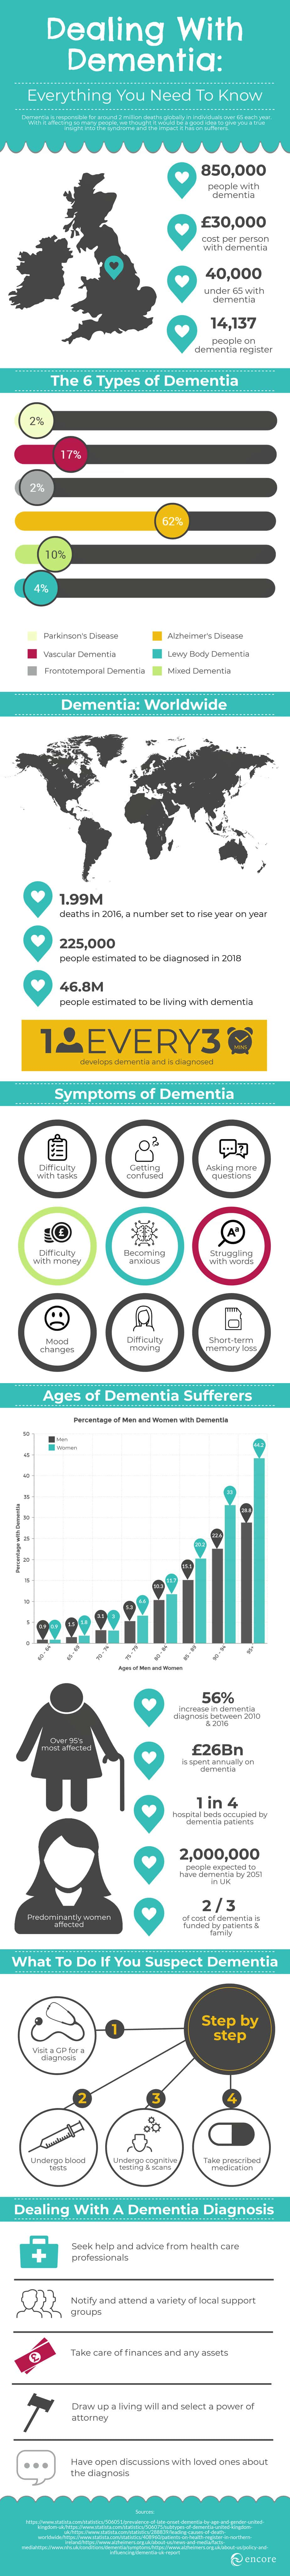 What is Dementia, How to deal with dementia